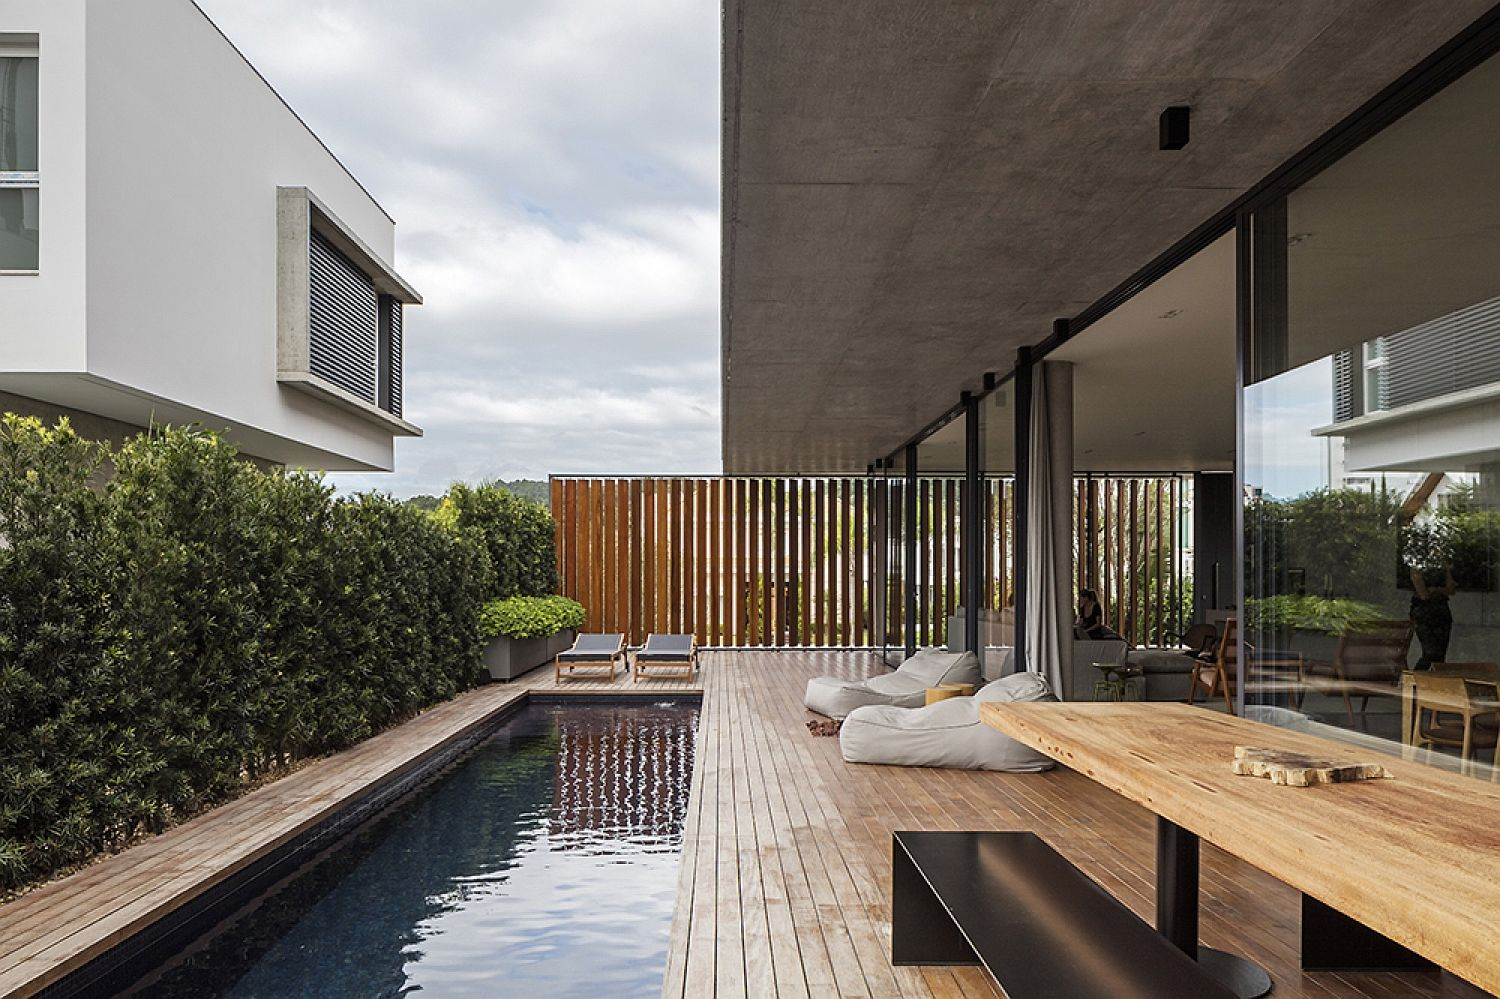 Expansive wooden deck and pool connecetd with ground level living area